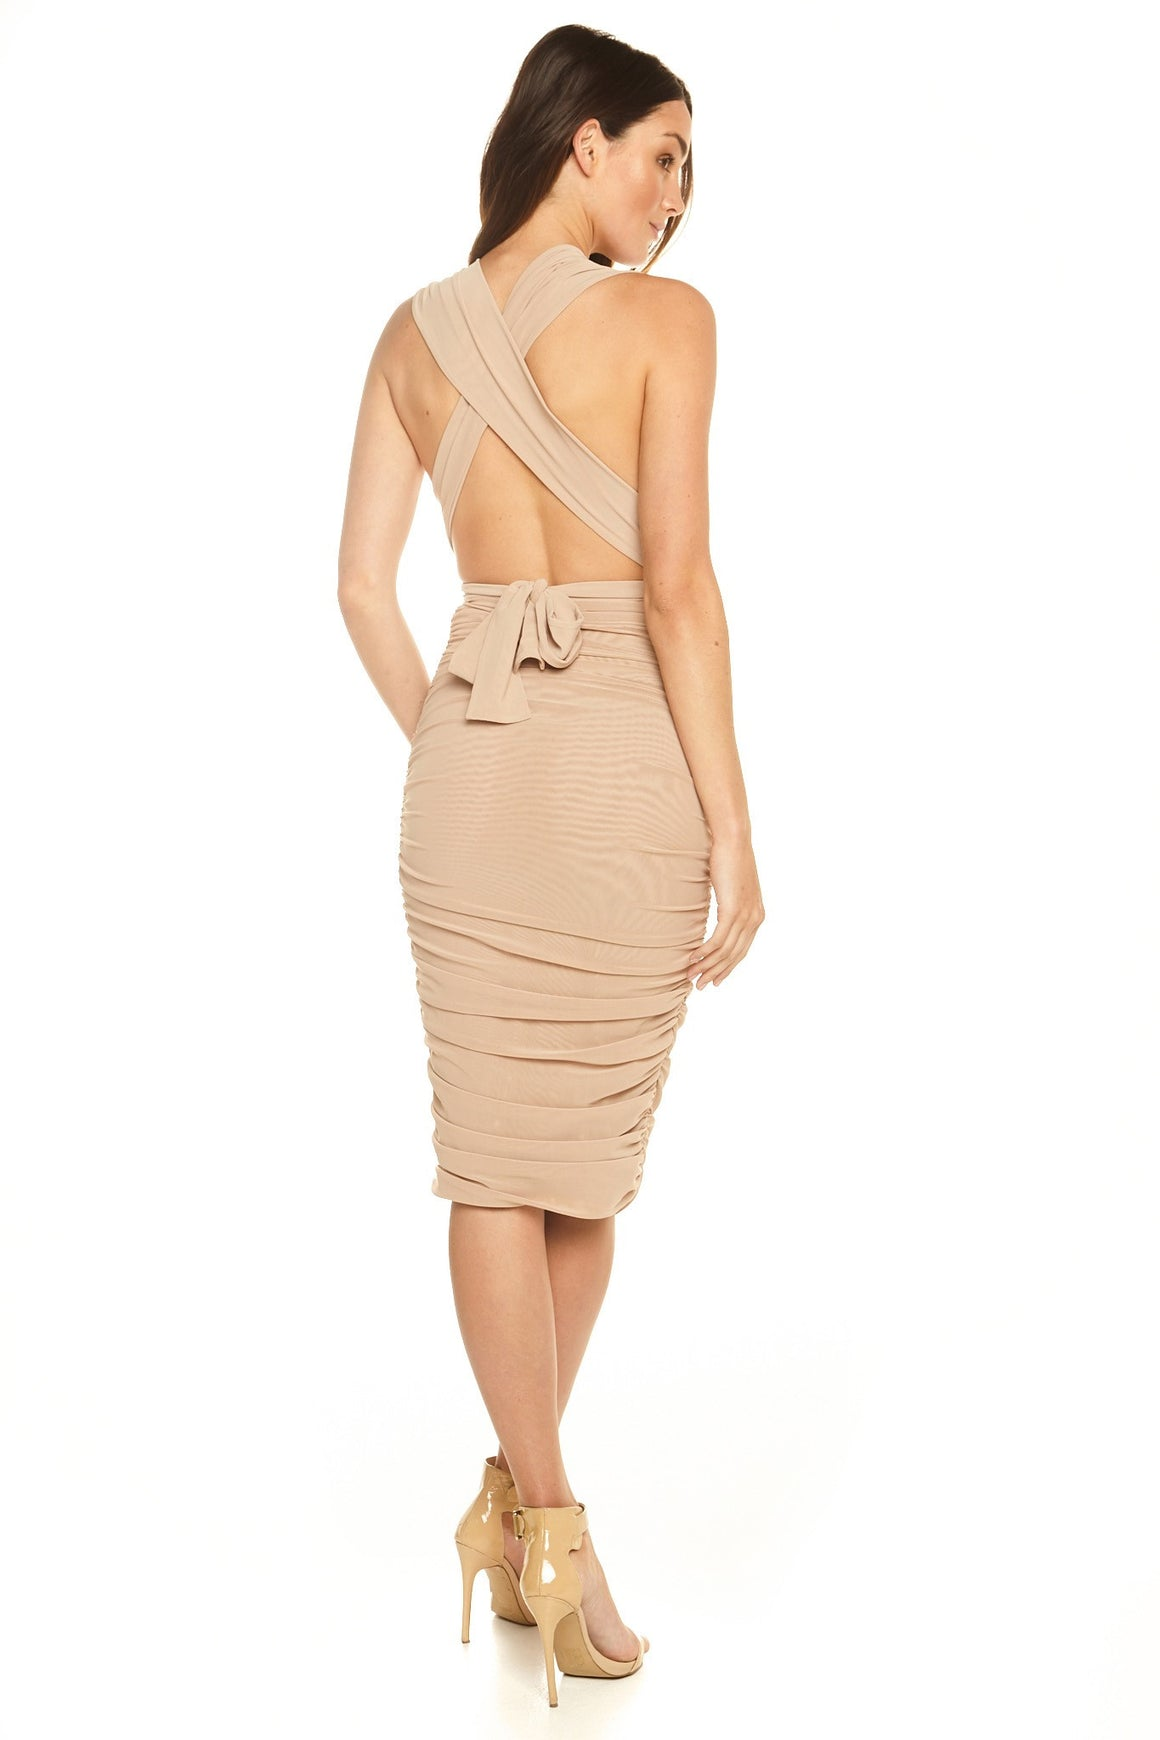 Dakota Multiway Mesh Dress - Nude